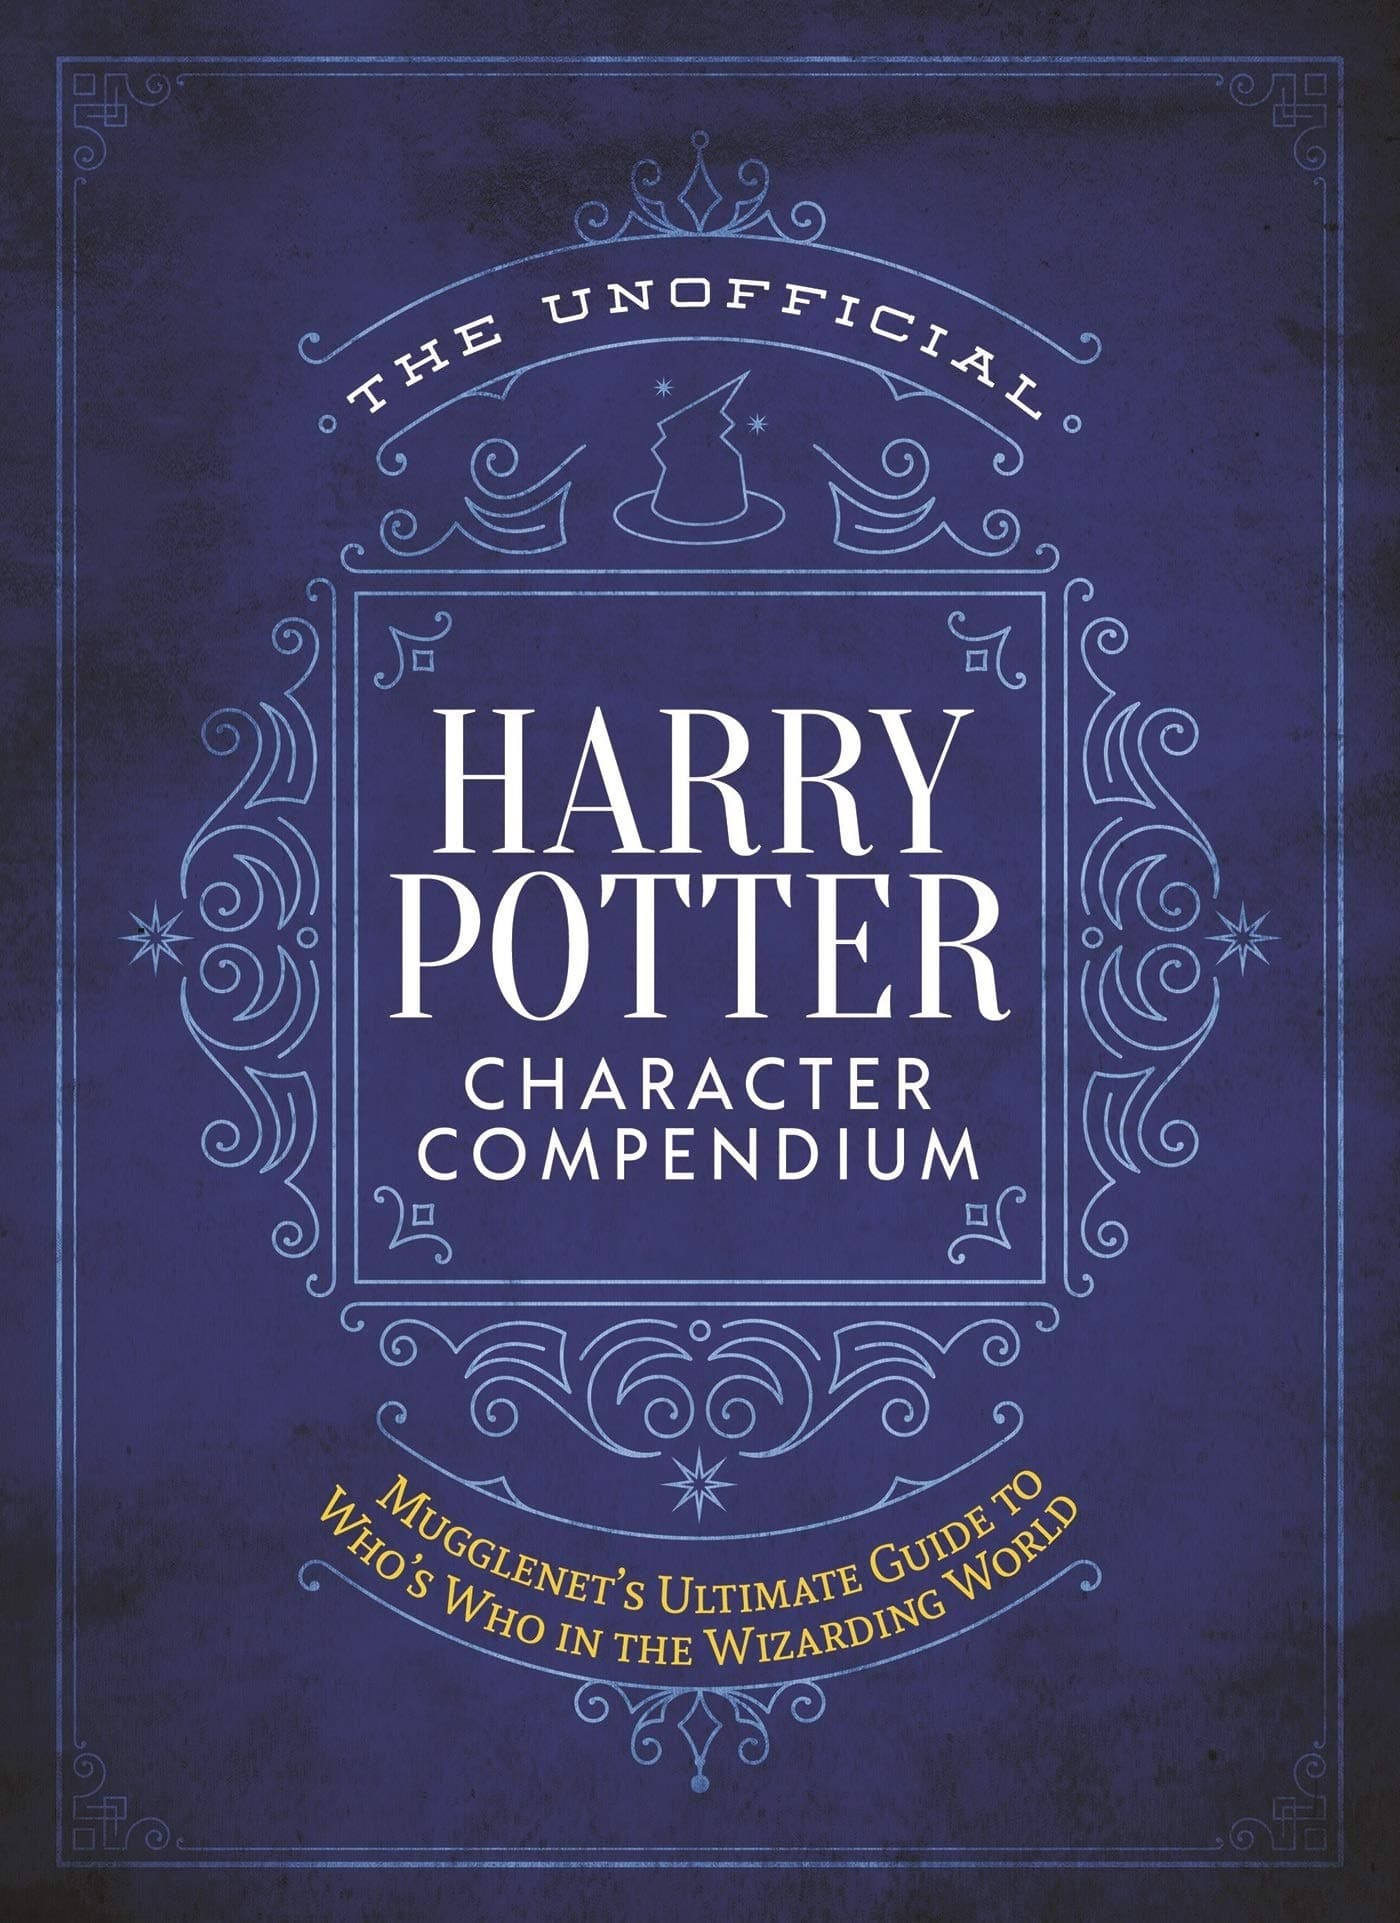 The Unofficial Harry Potter Character Compendium: MuggleNet's Ultimate Guide to Who's Who in the Wizarding World (Hardcover) $8.50 + F/S w/ Amazon Prime